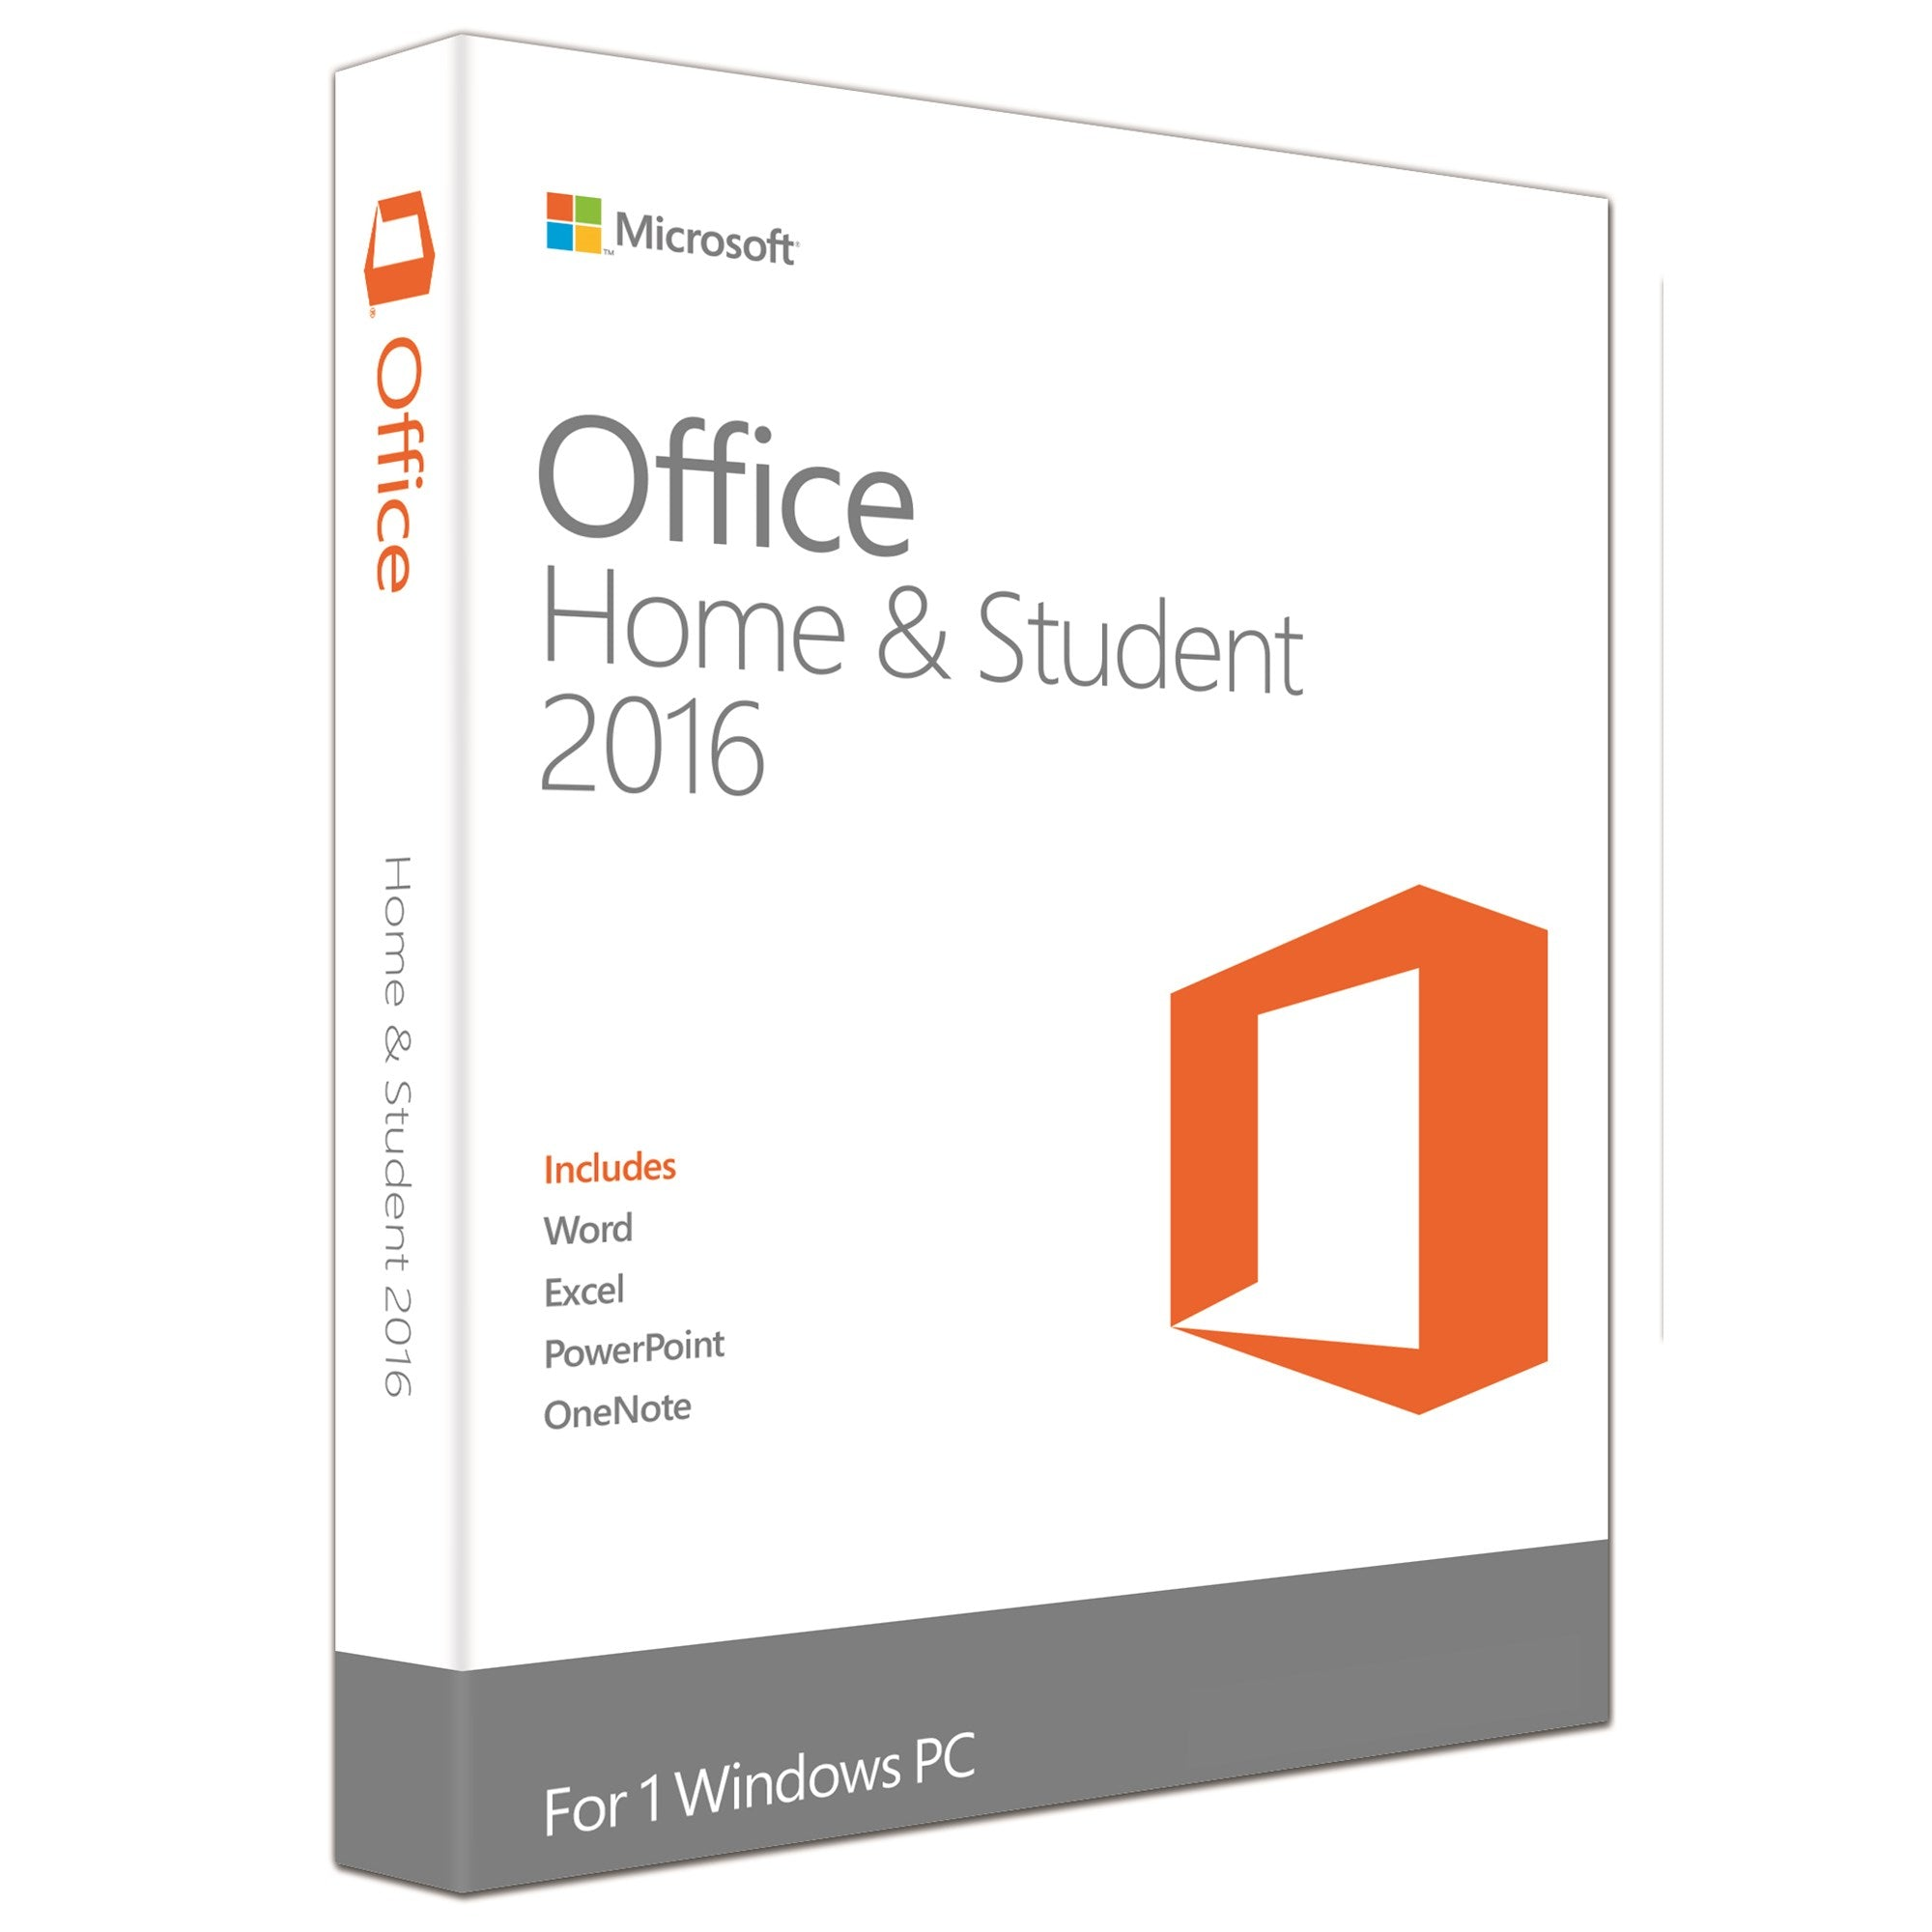 Microsoft Office Home & Student 2016 for Window Life time license - Digital Zone